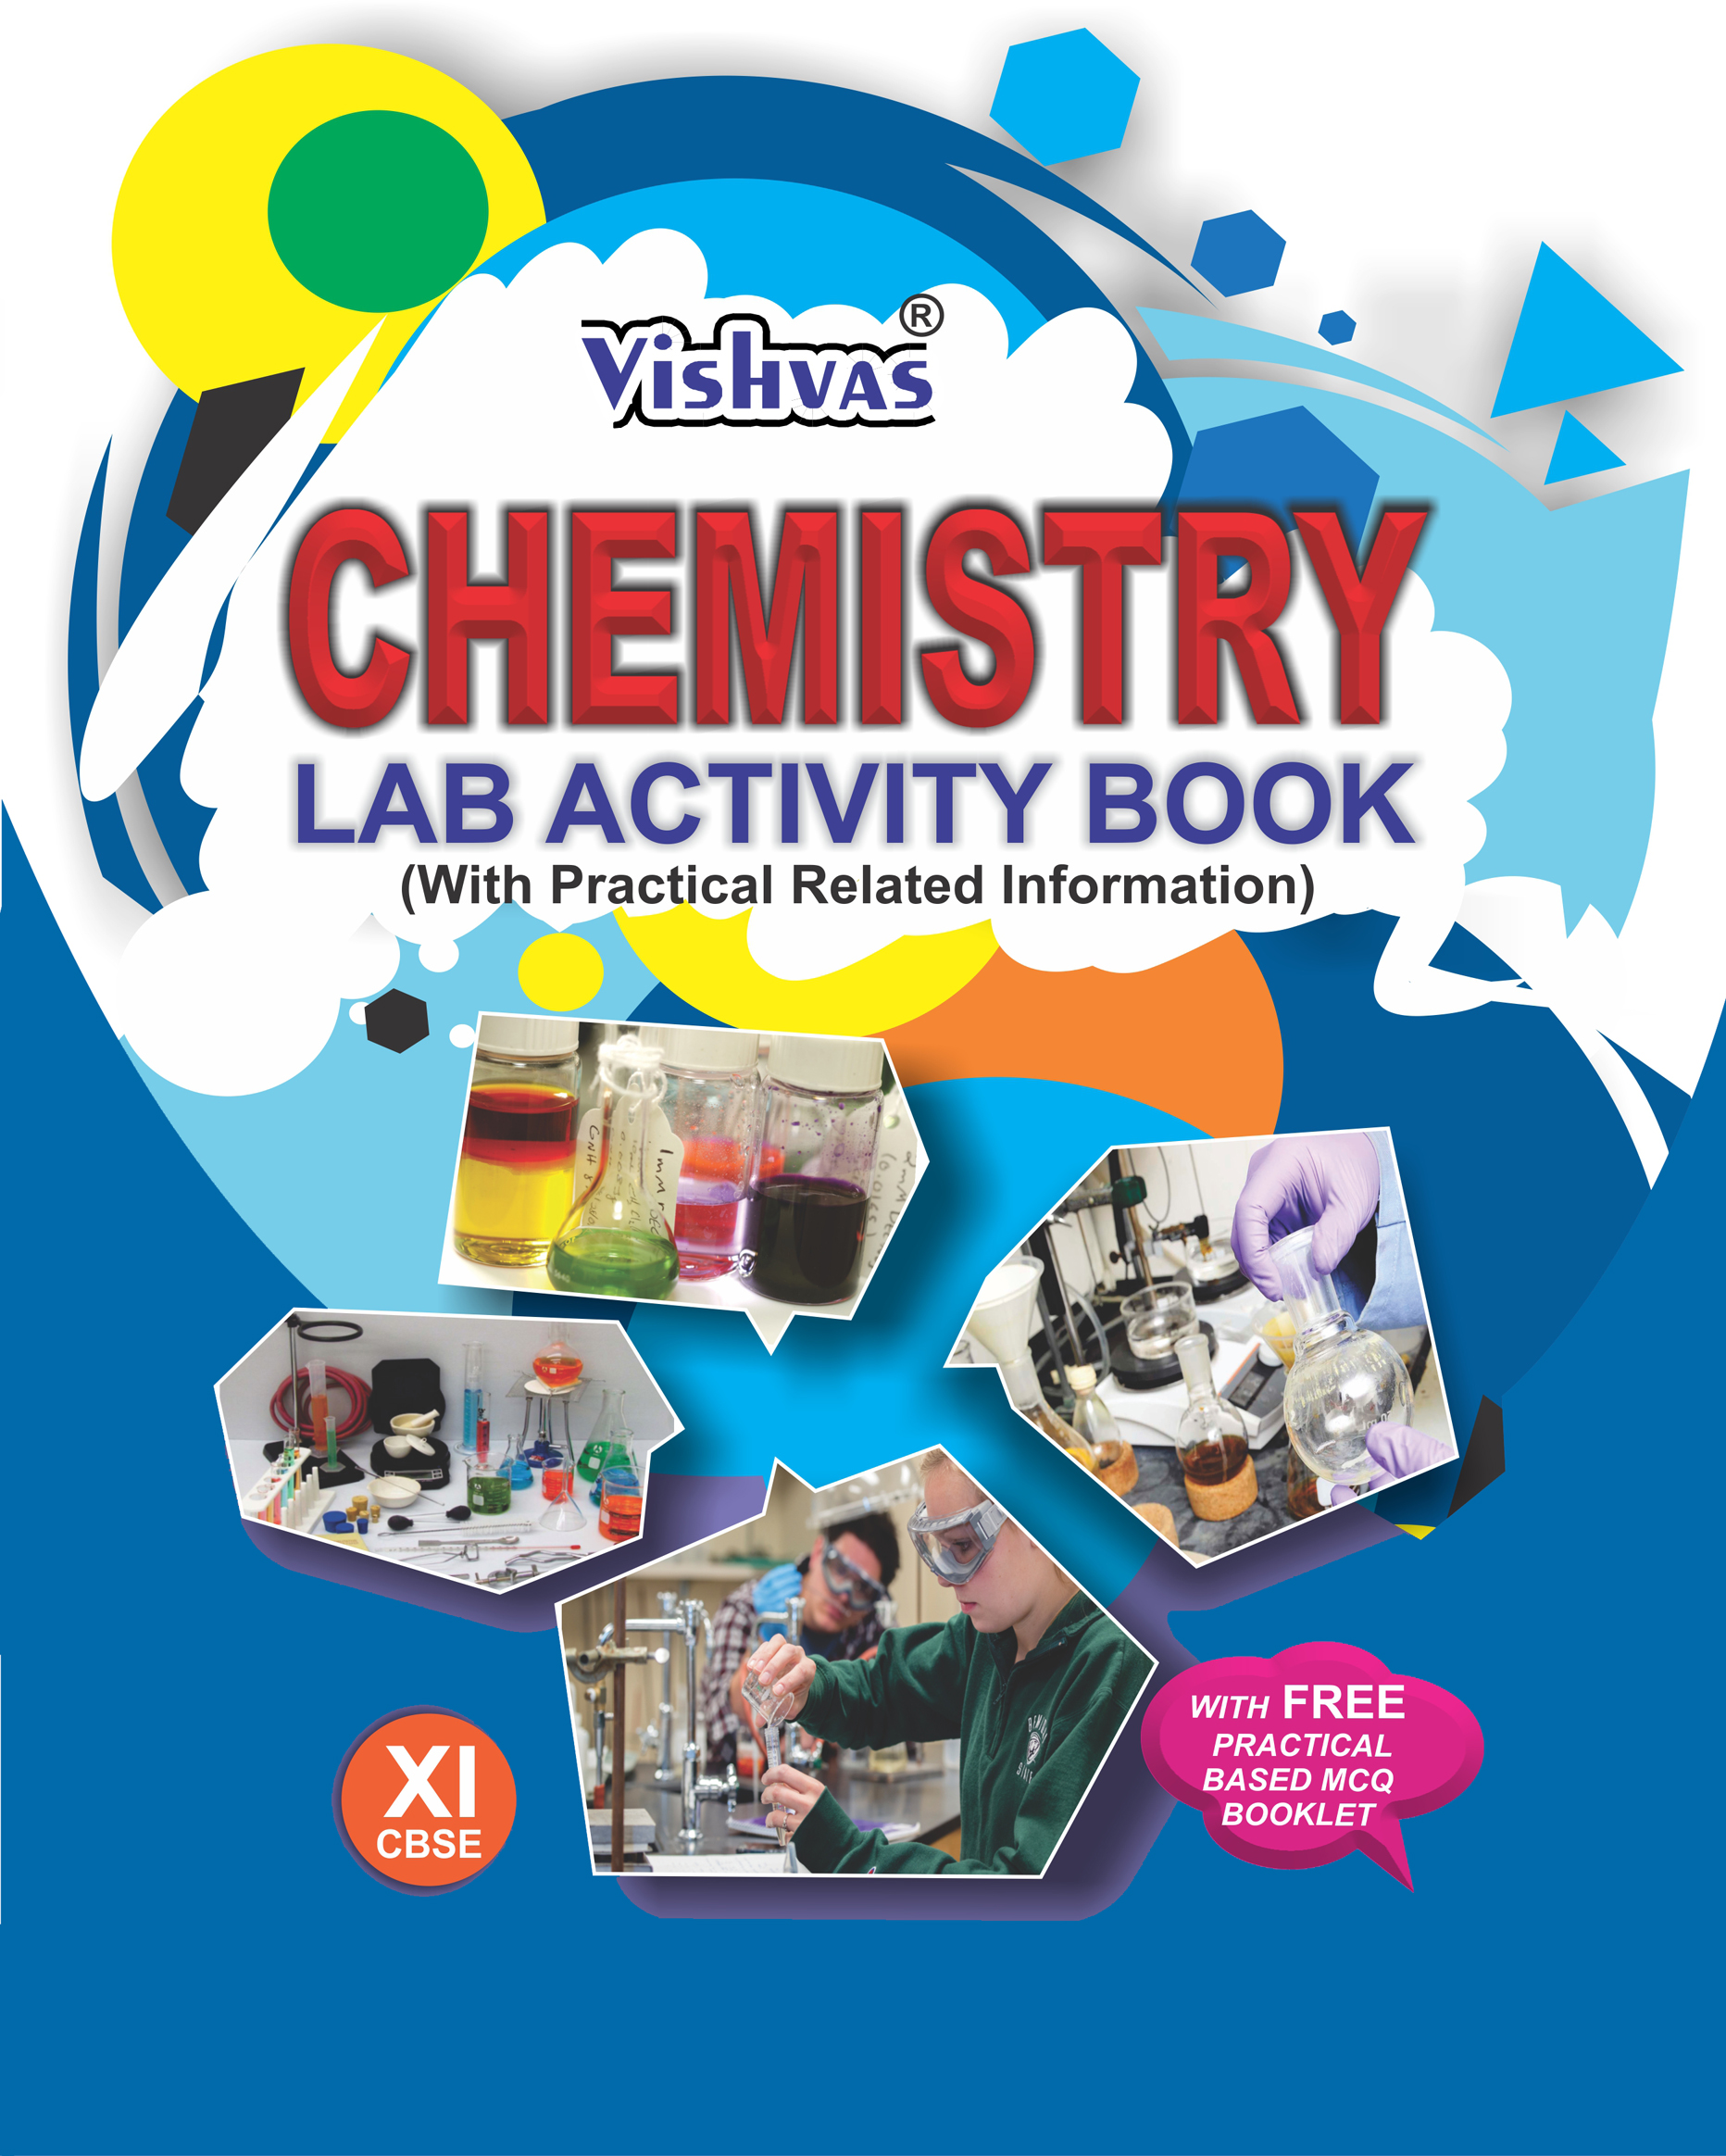 CBSE-2019-CHEMISTRY LAB ACTIVITY BOOK ,Class-XI, (With Practical Related  Information), With Free Practical based MCQ Booklet(Hardcover)-Revised